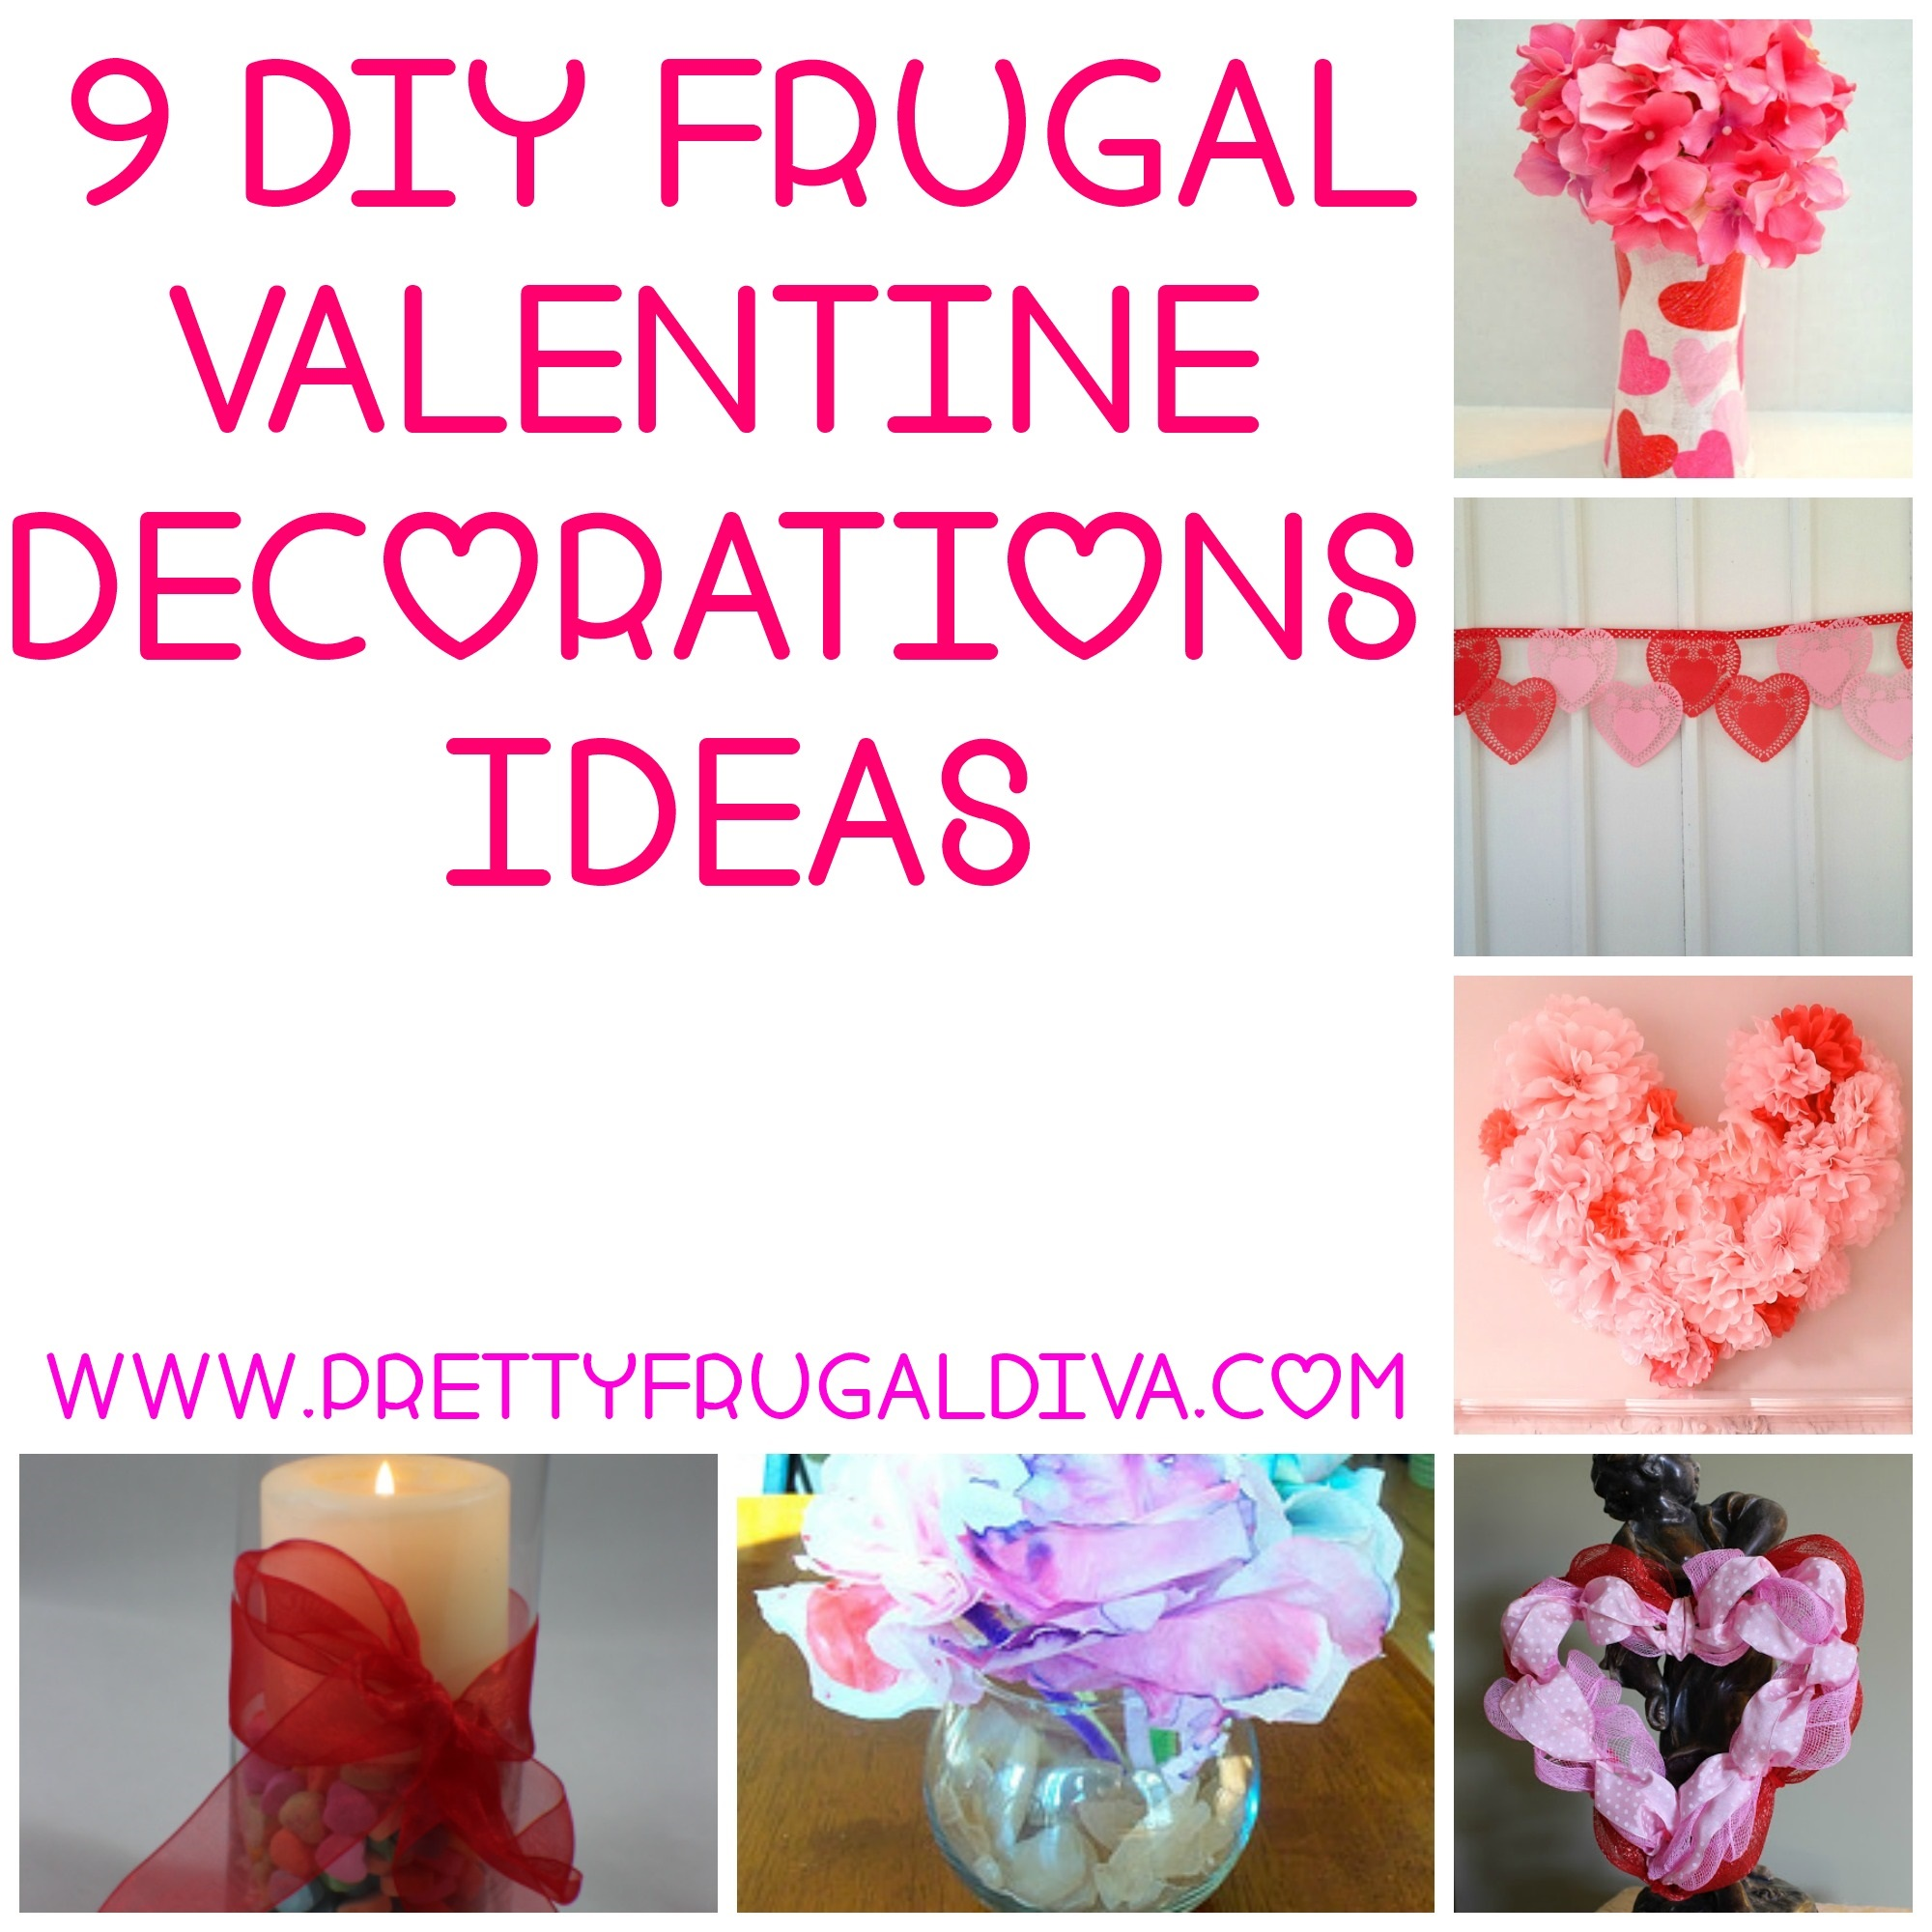 9 diy frugal valentine decor ideas pretty frugal diva for Valentine s day home decorations